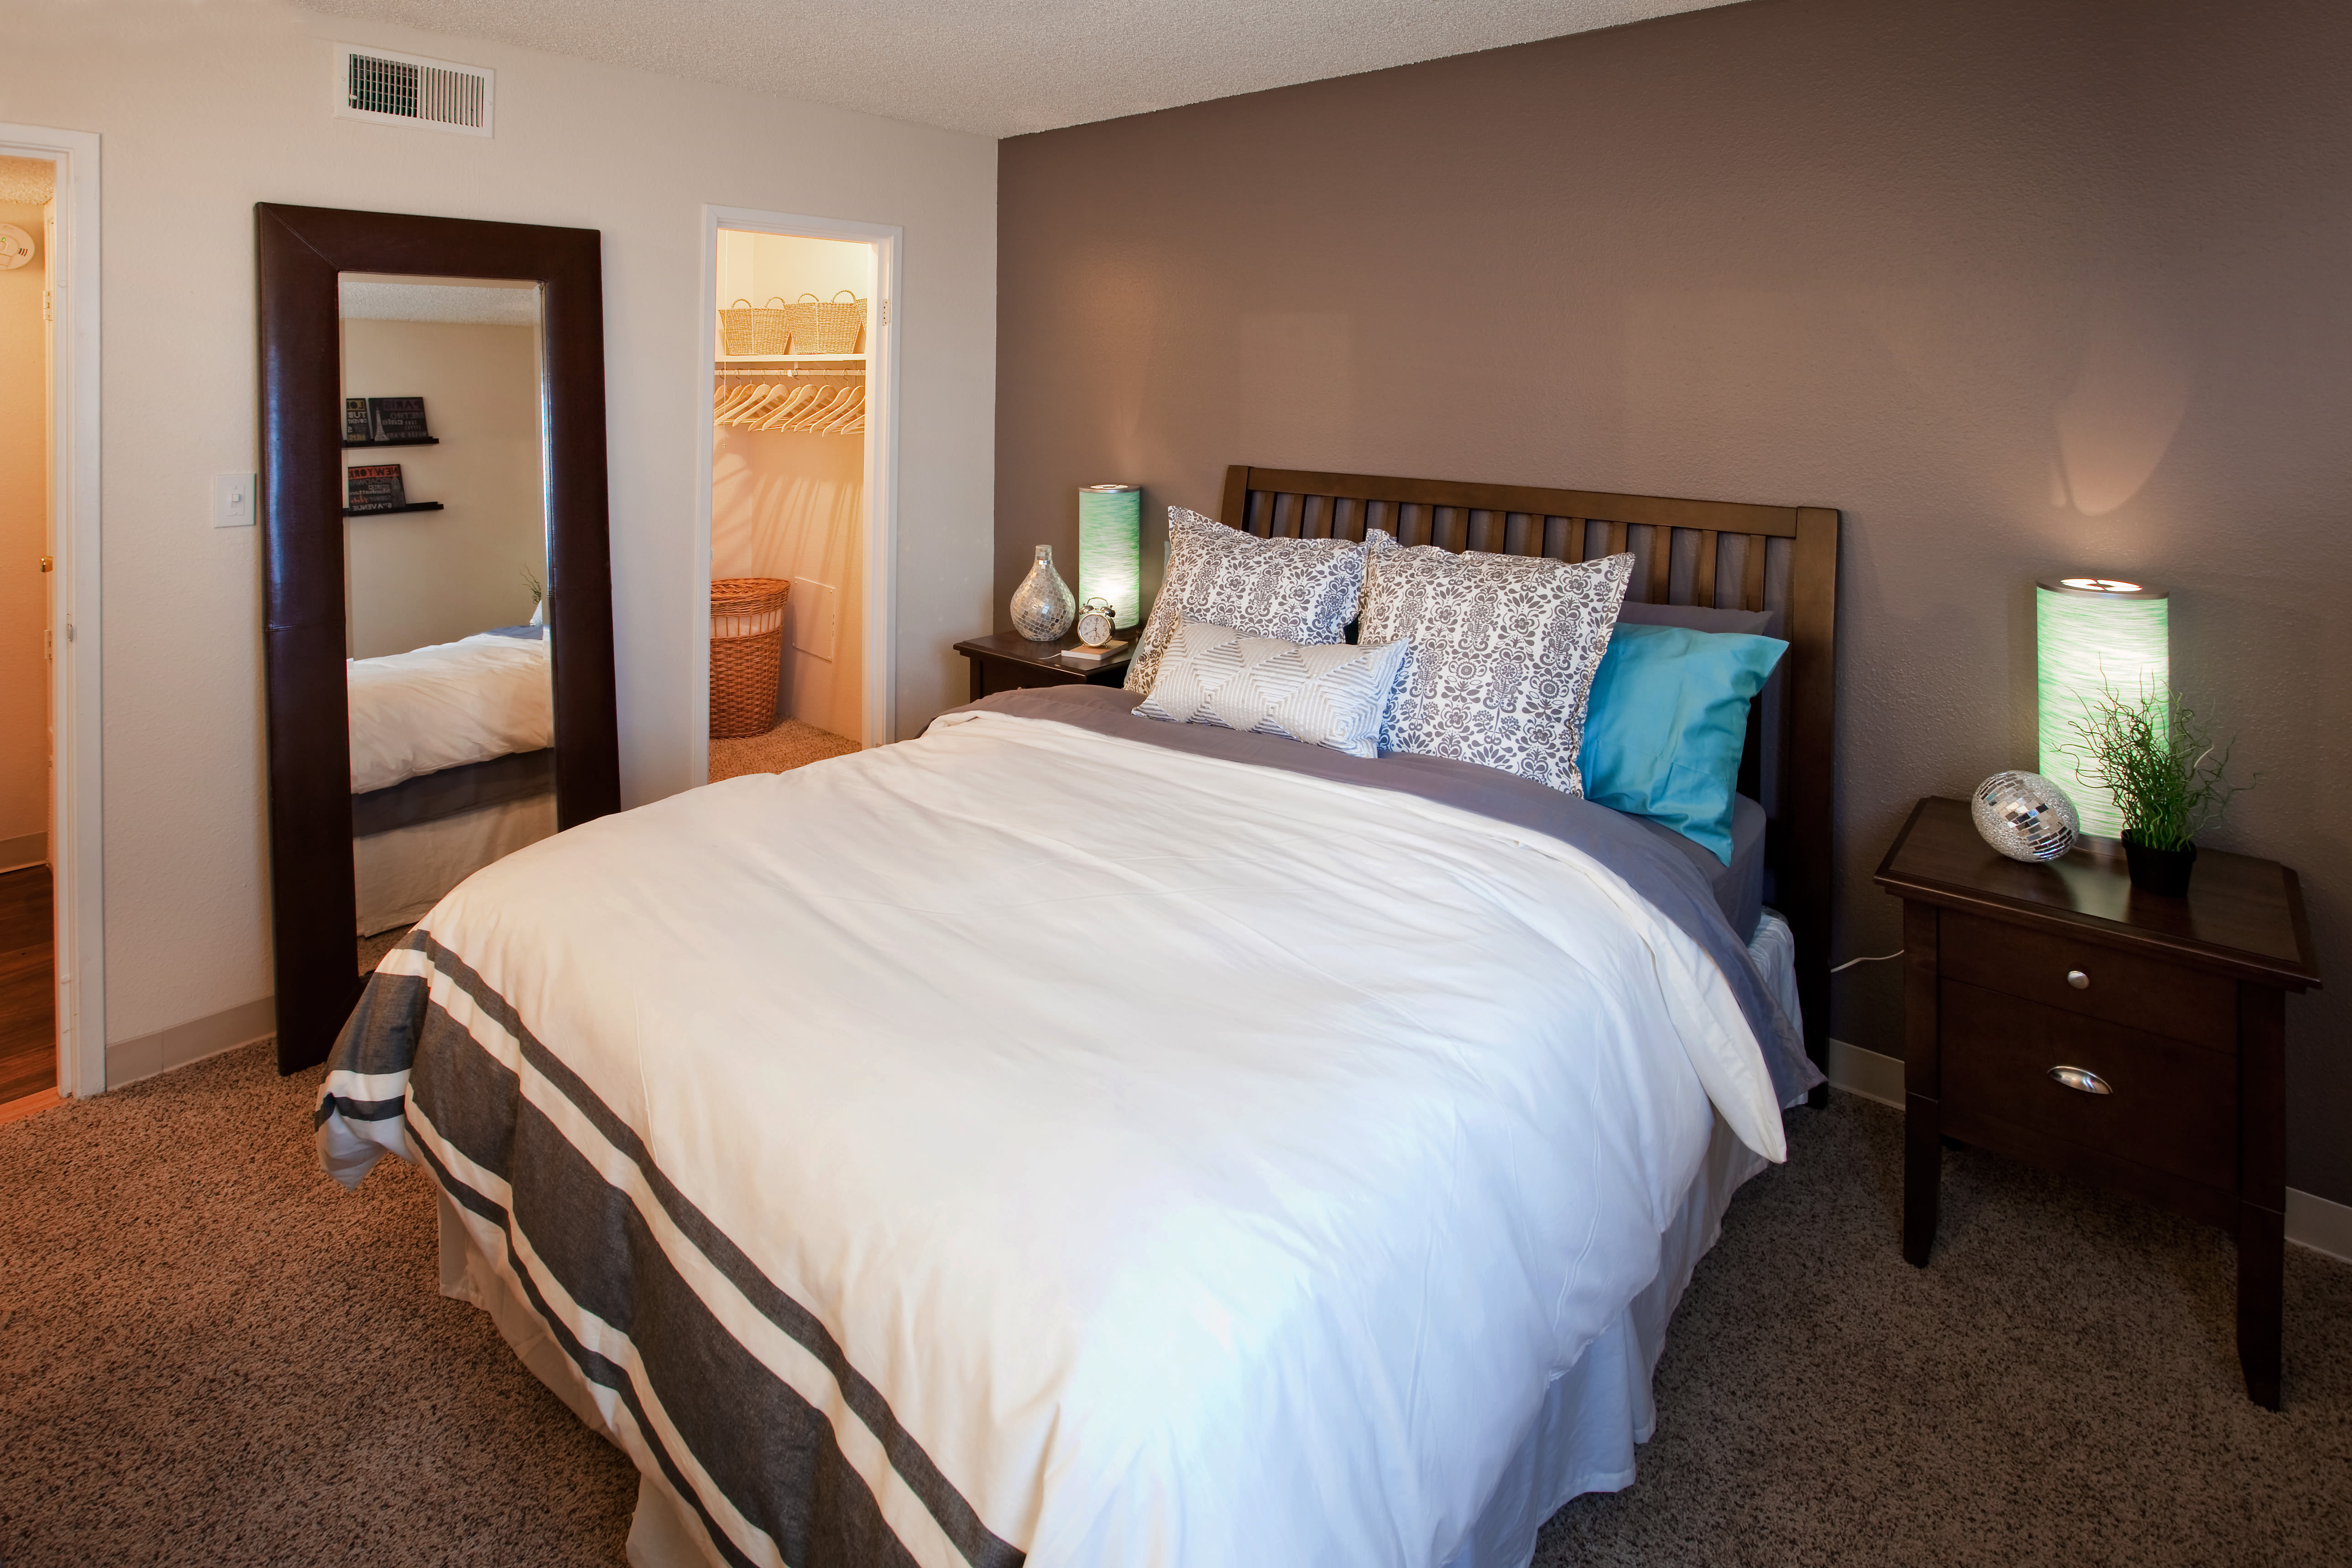 Bedroom at Hampden Heights Apartments features a gray accent wall and full length mirror